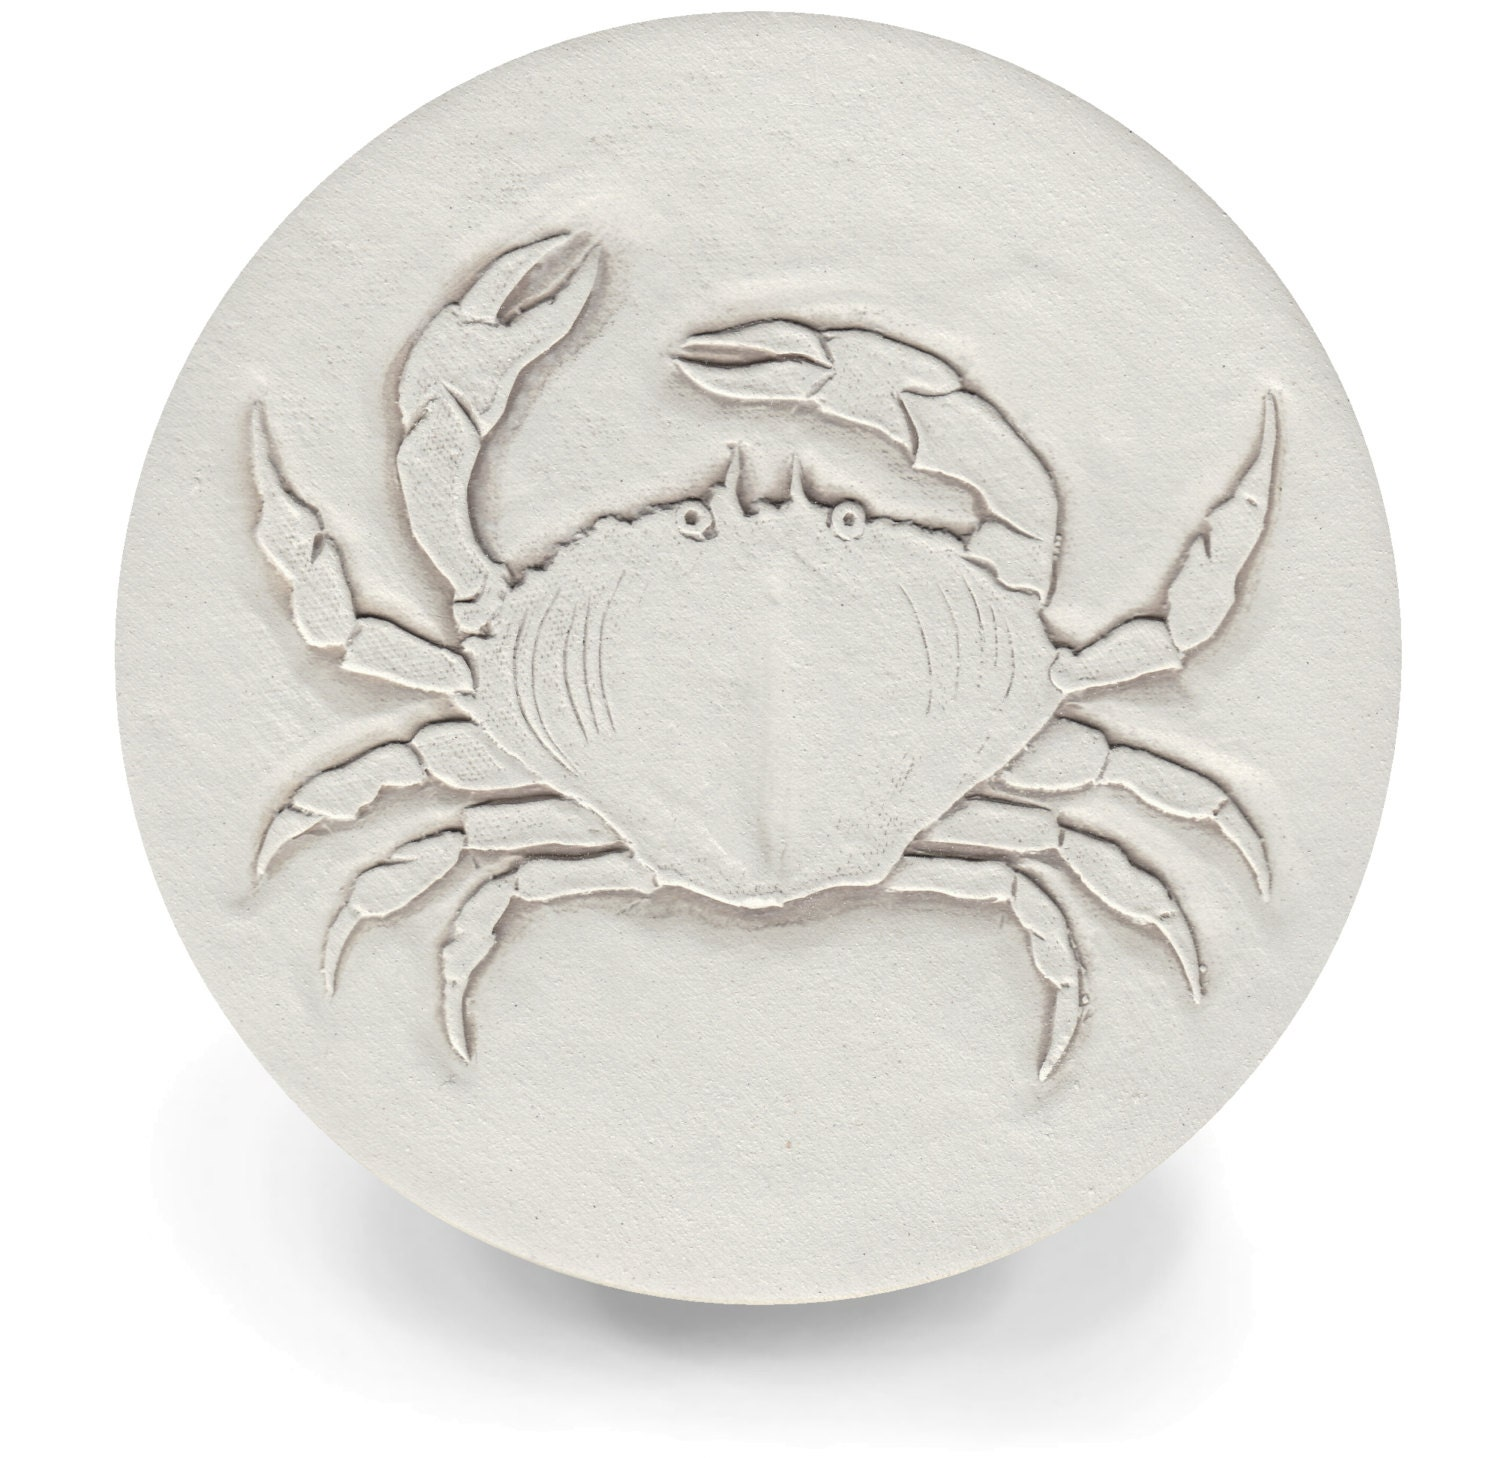 Crab drink coasters absorbent coasters beach by shaynemccarter - Drink coasters absorbent ...